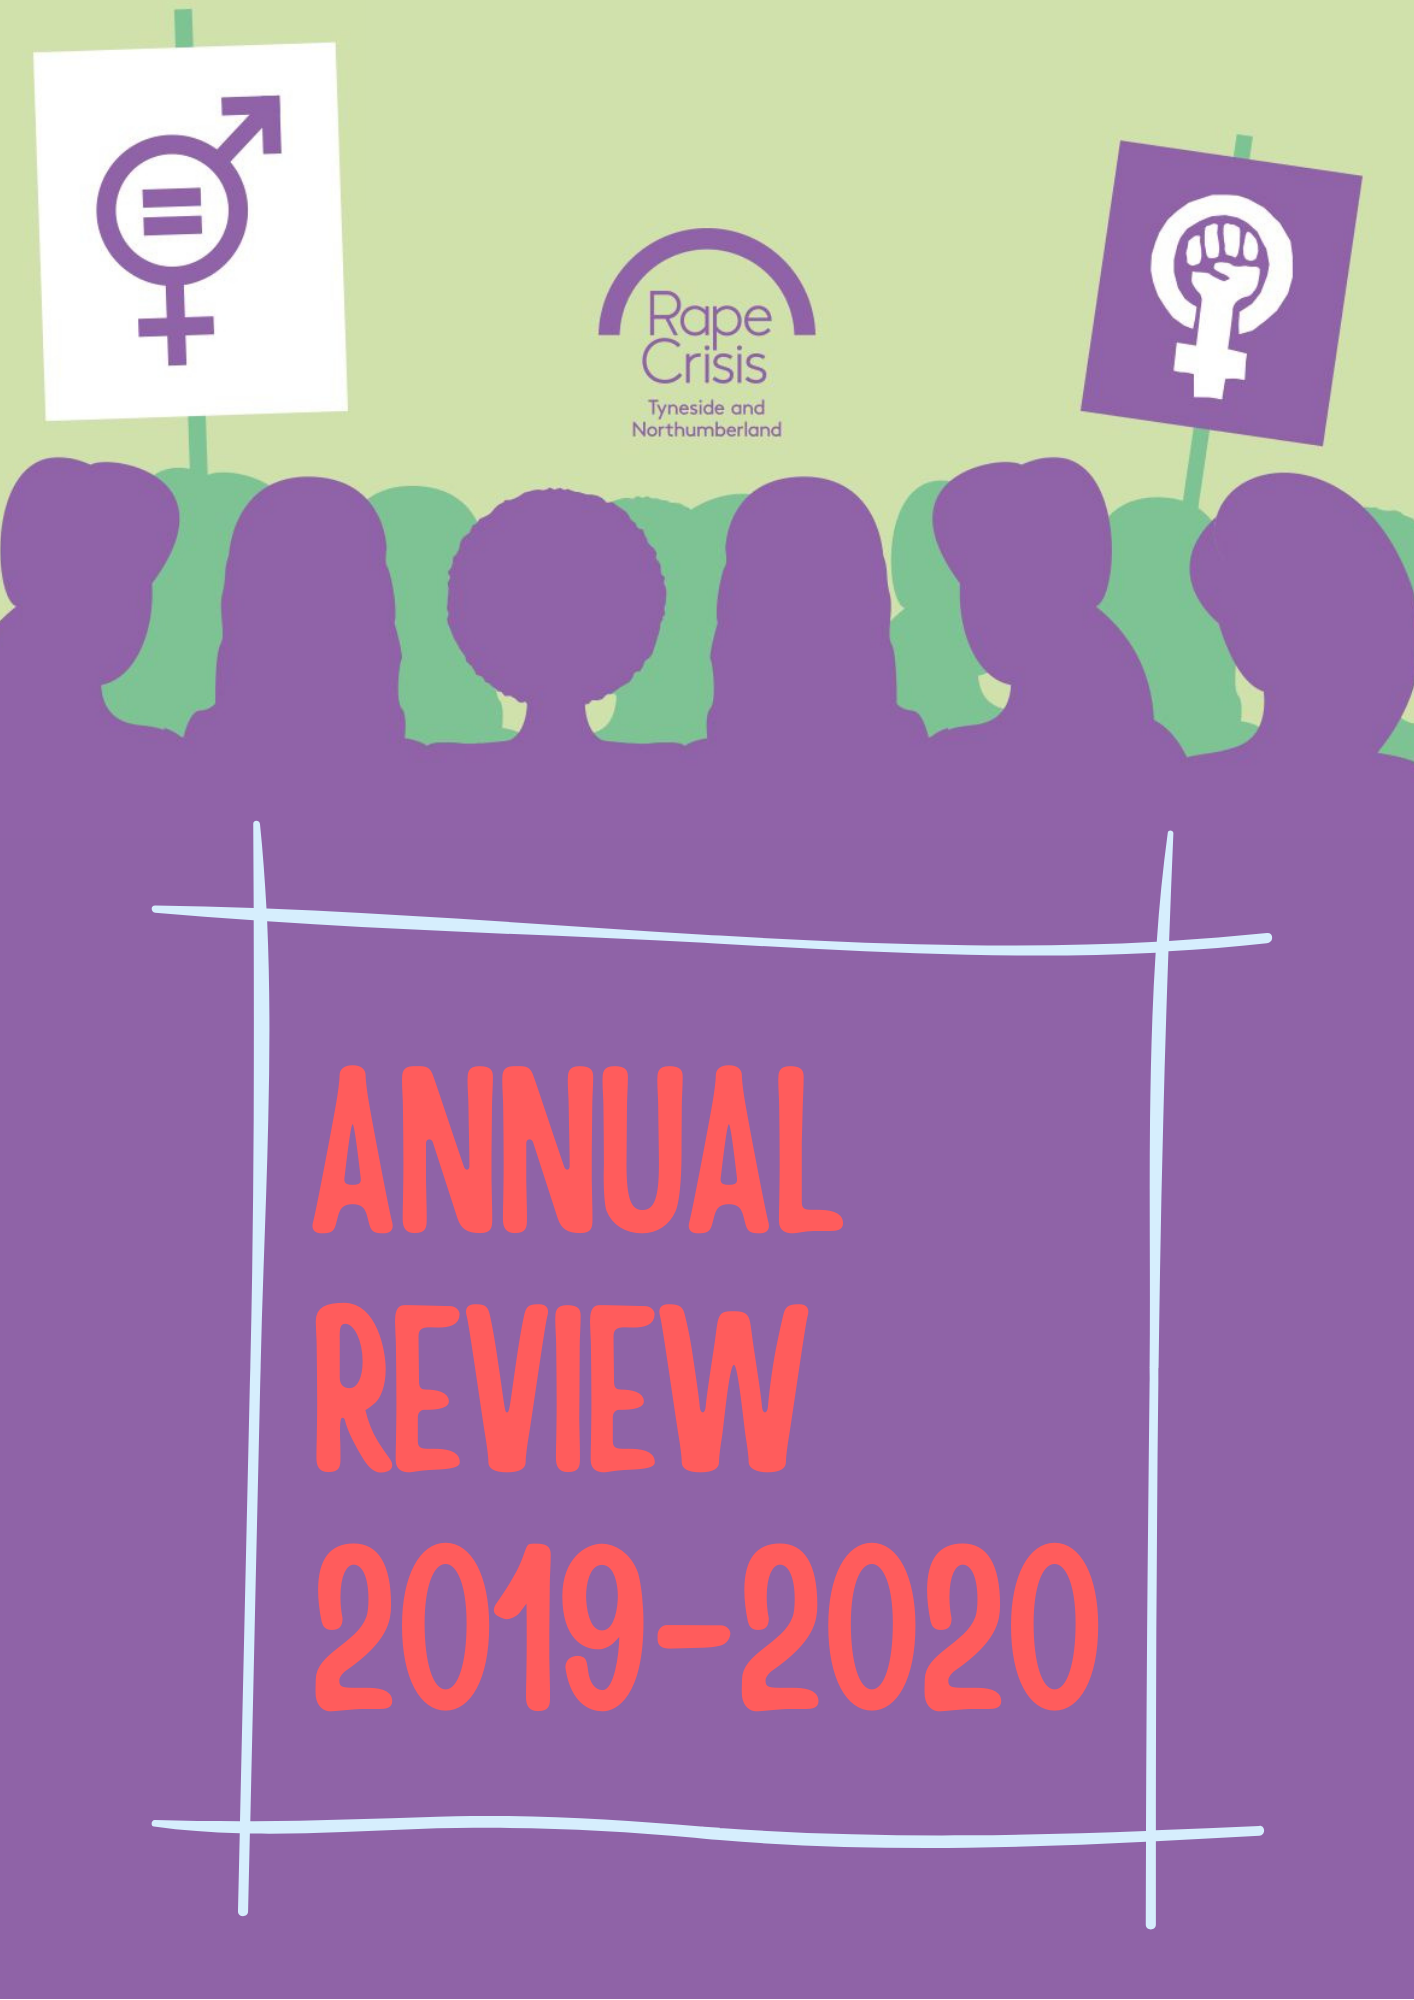 Click here to download 2019-2020 Annual Review